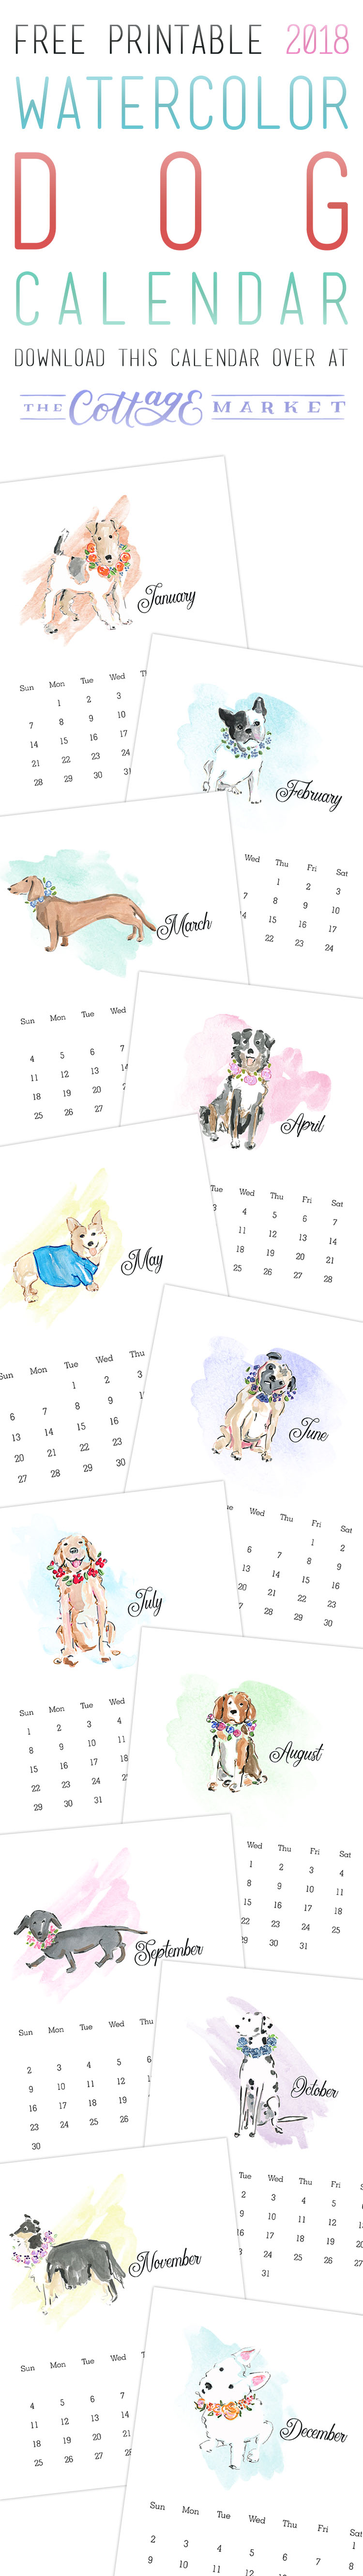 Free Printable 2018 Watercolor Dog Calendar from The Cottage Market